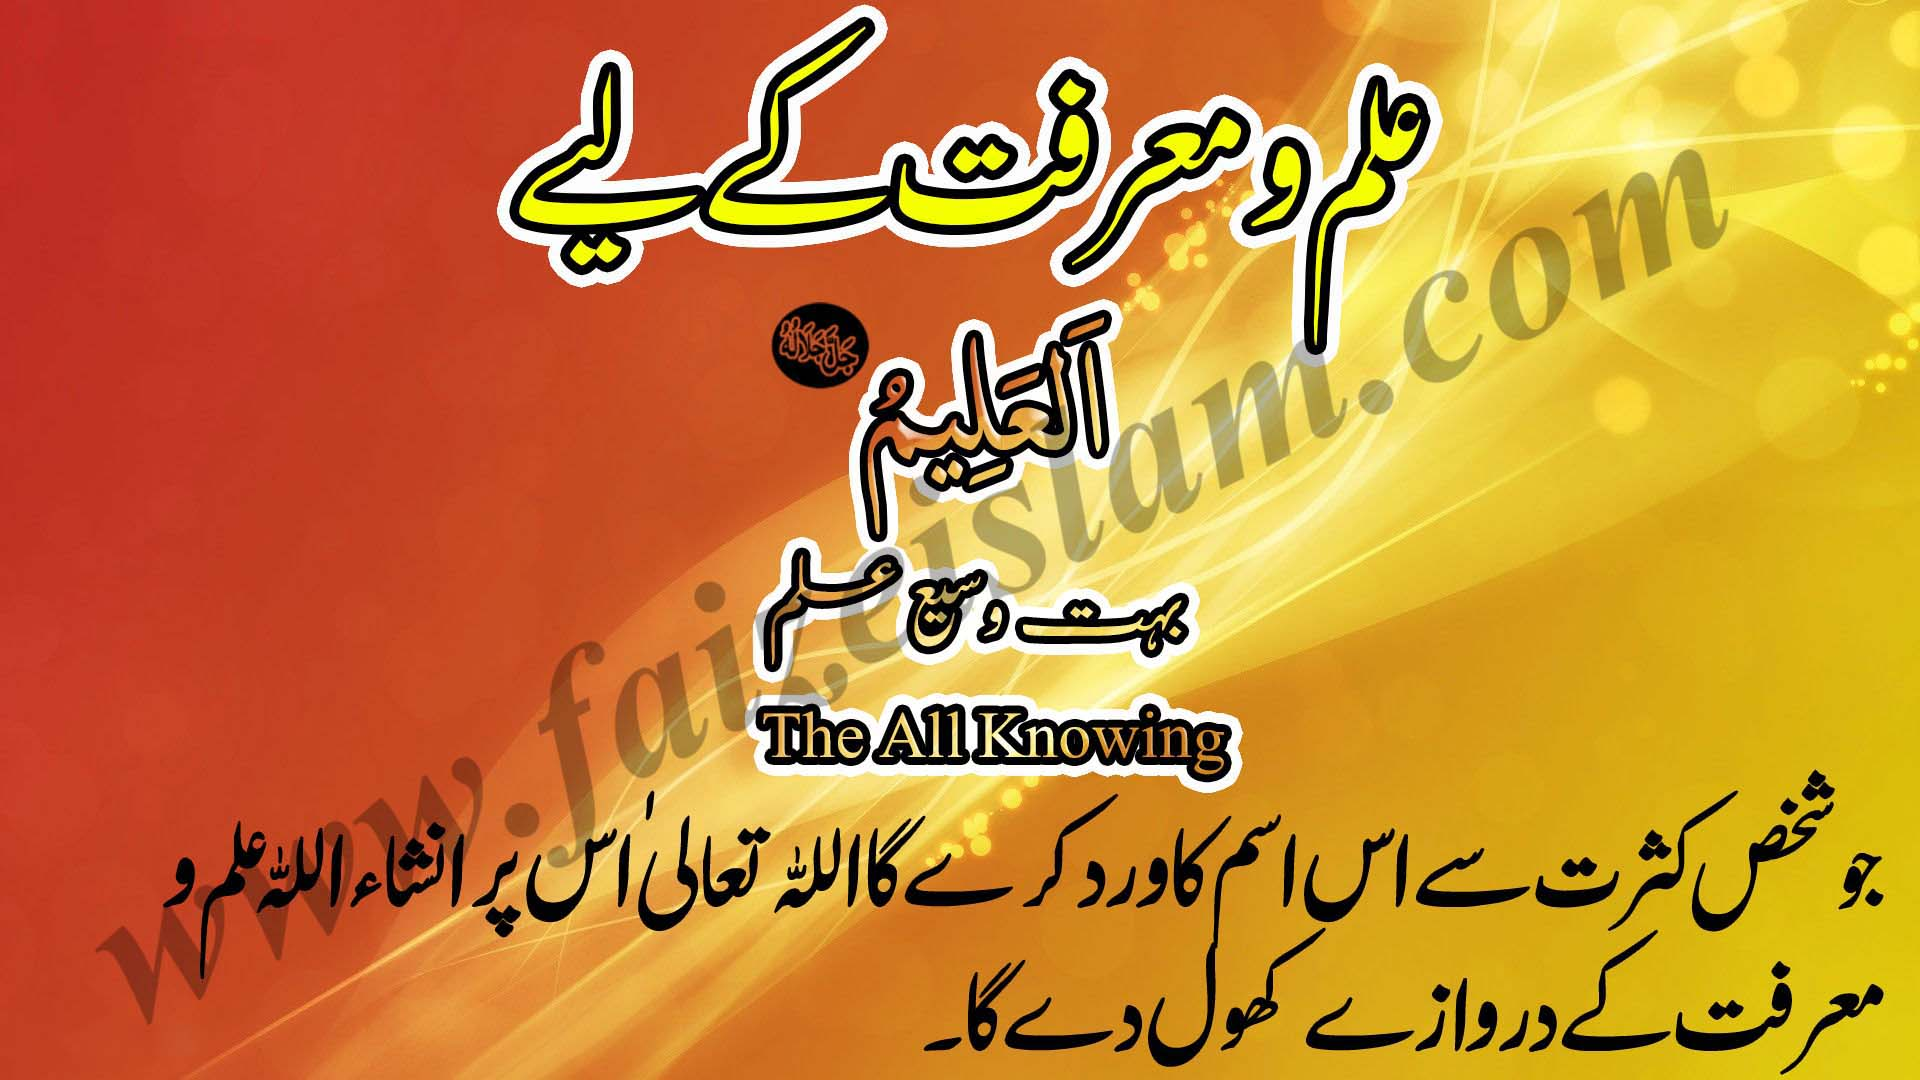 Photo of Ilm O Marifat Ke Liye Wazaif In Urdu